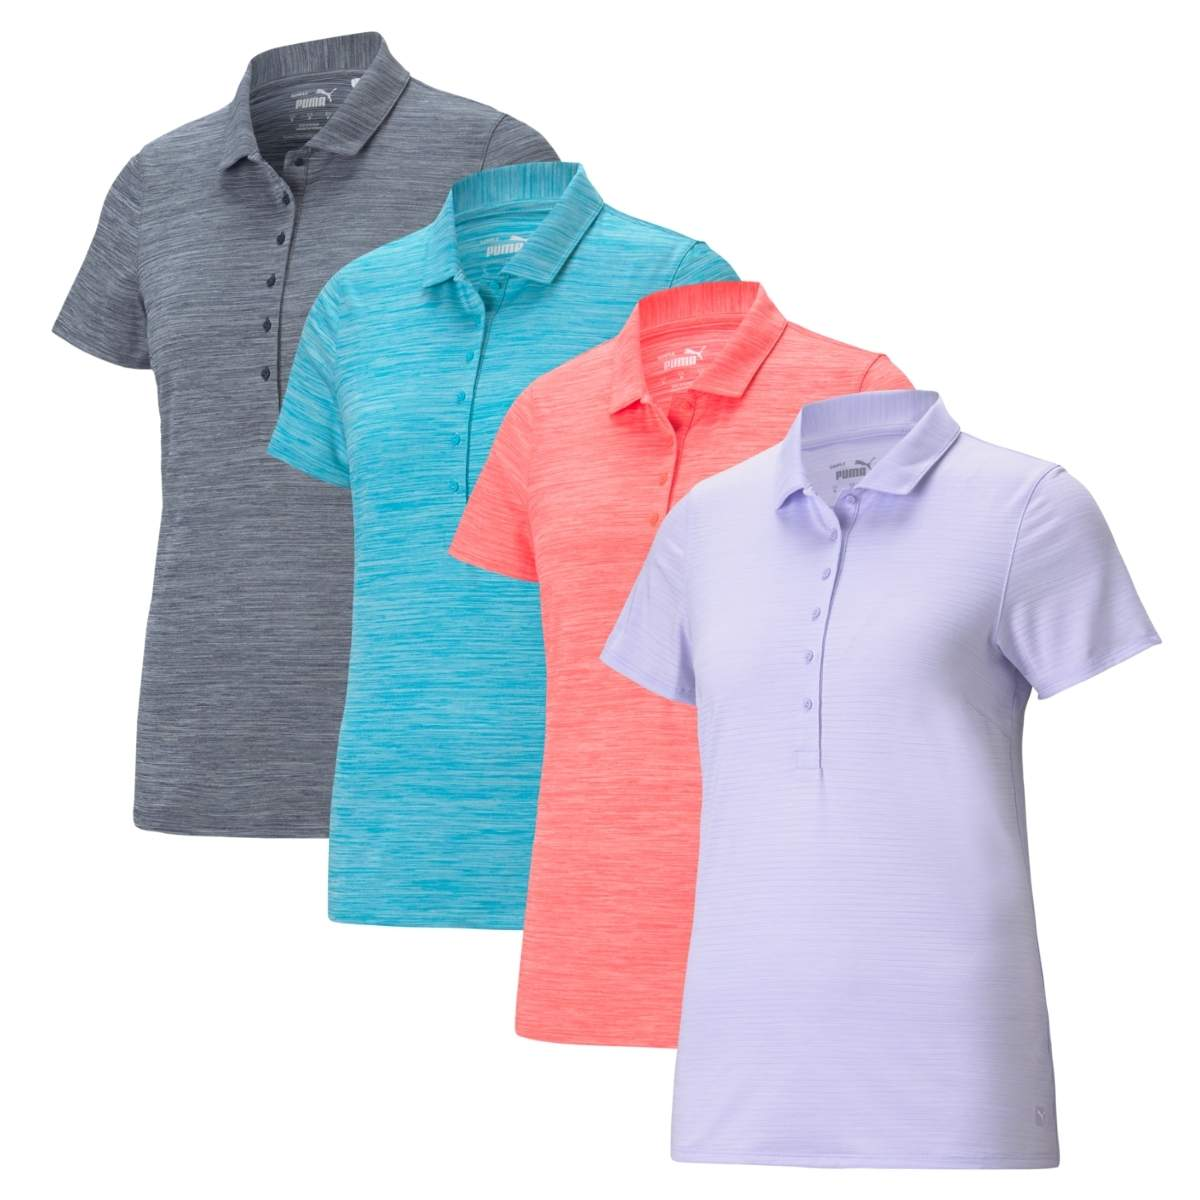 Puma Women's 2021 Daily Polo